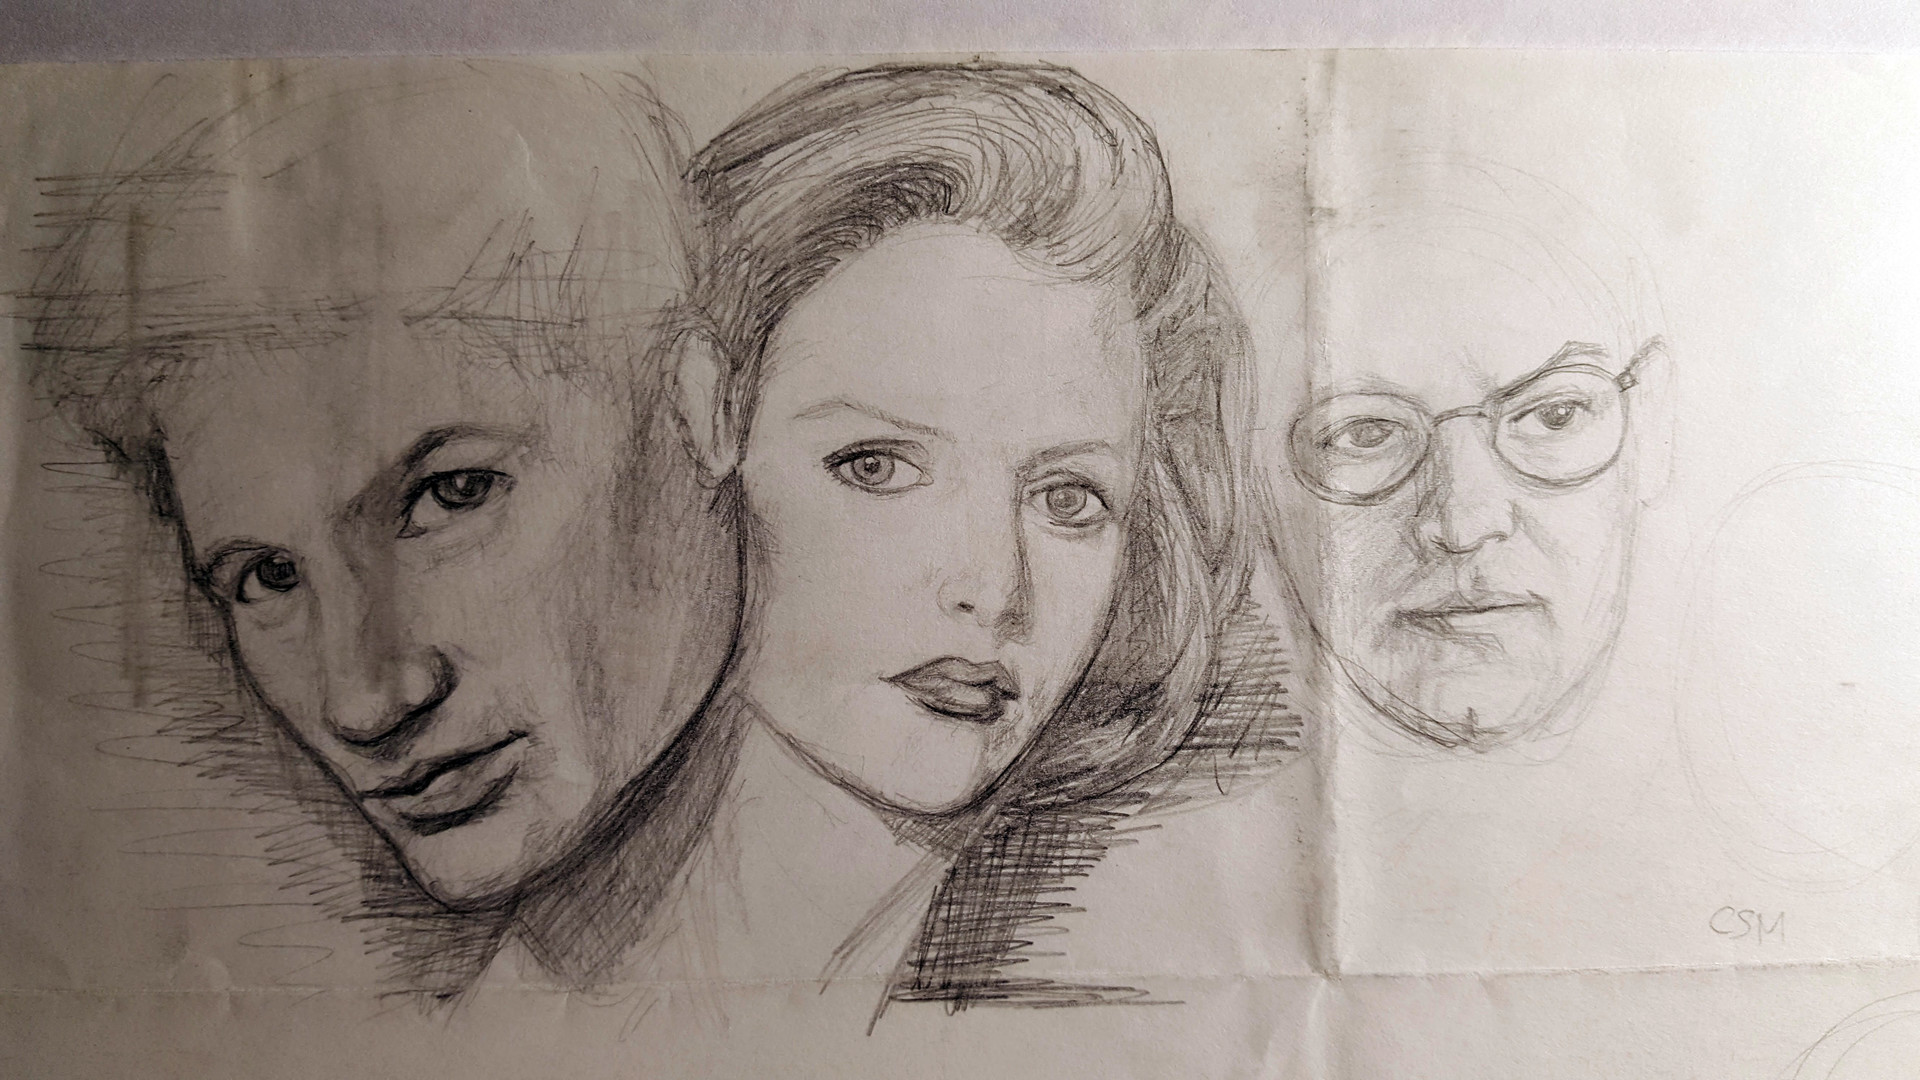 X-Files. Mulder, Scully, and unfinished Skinner.